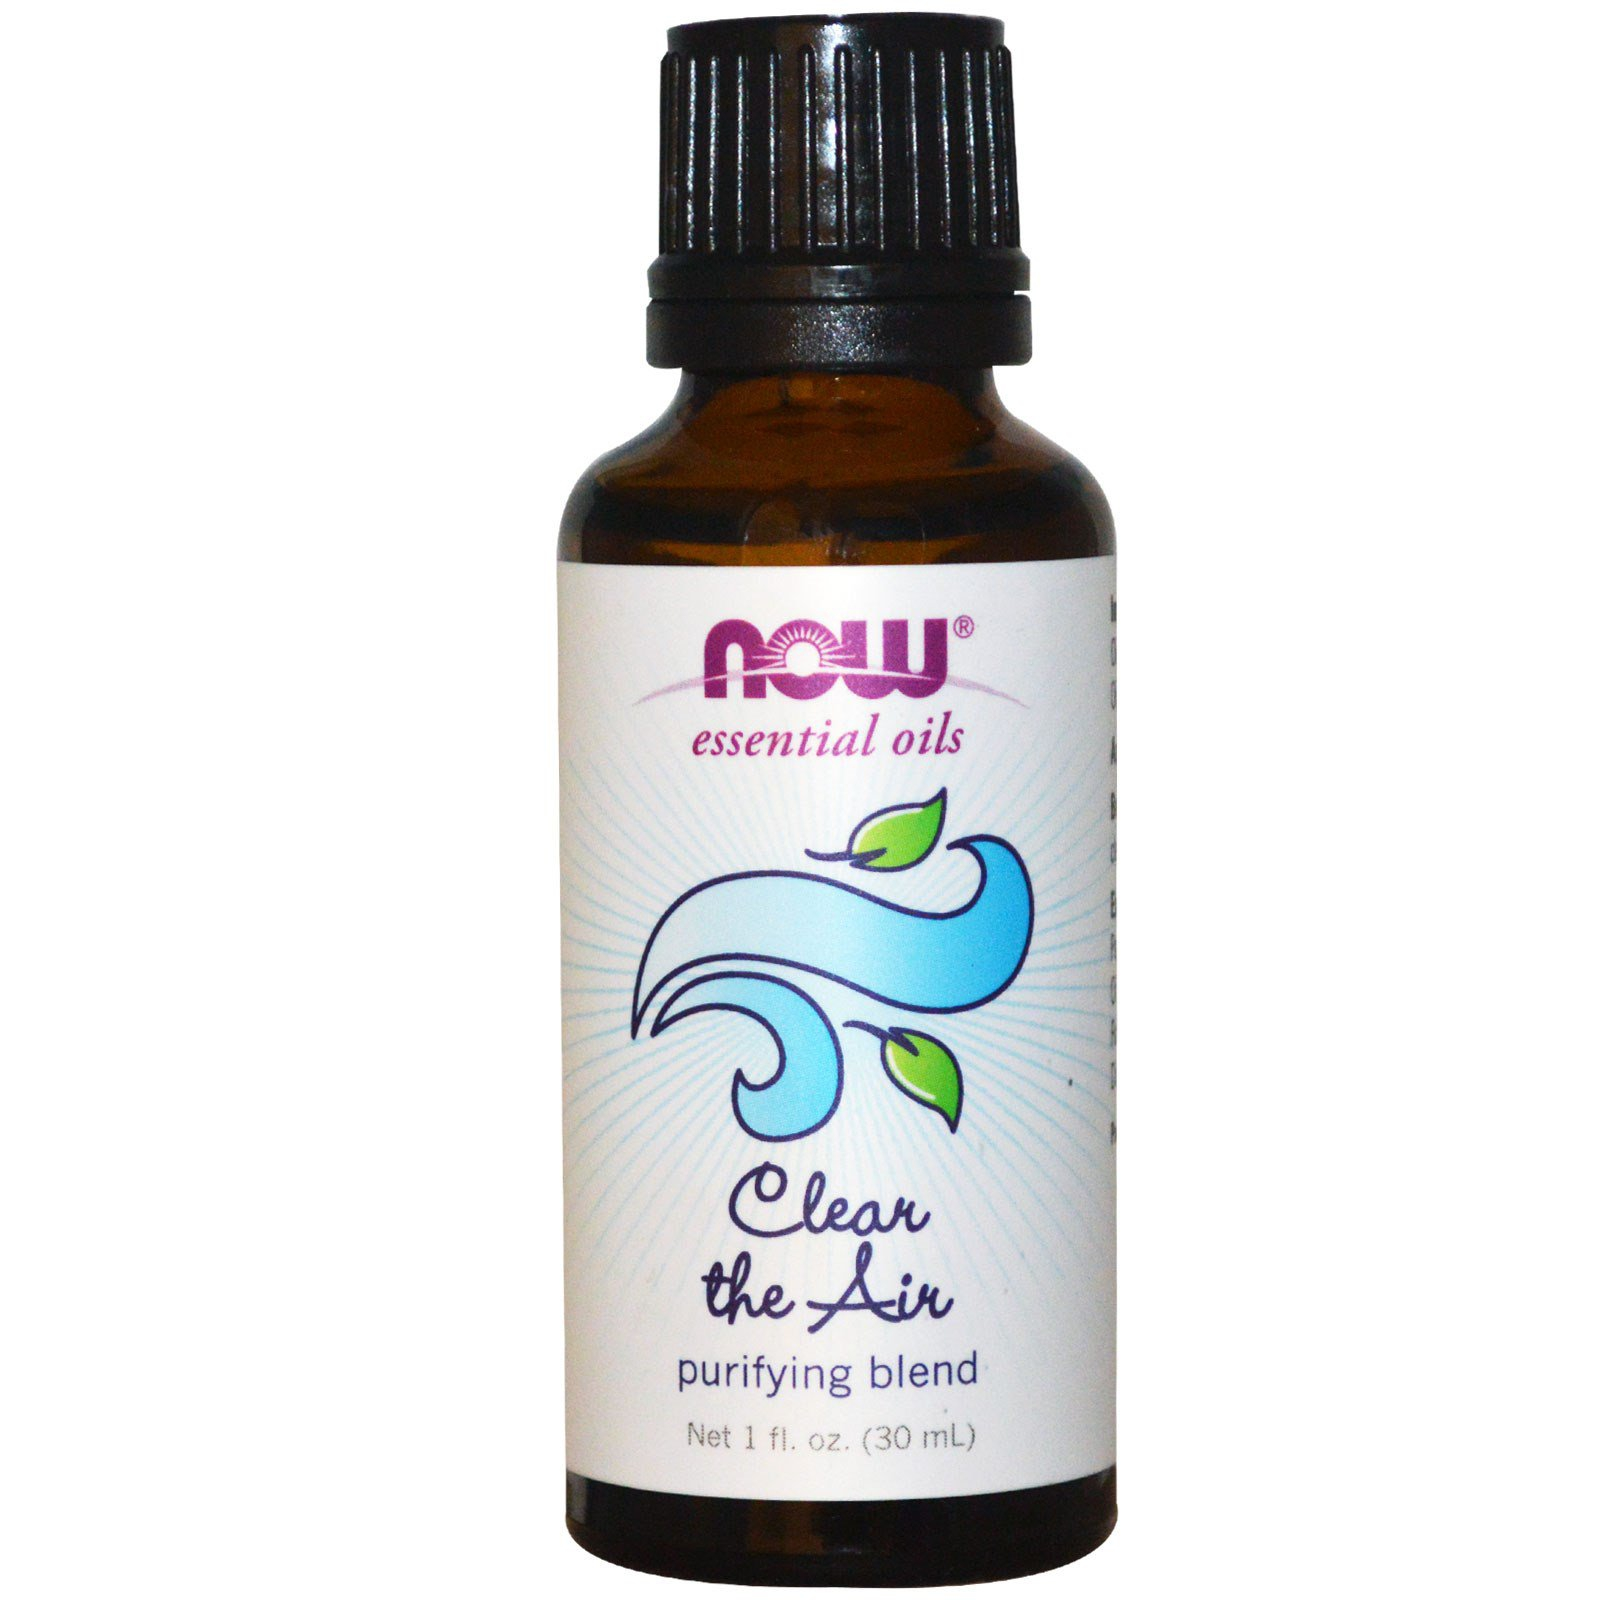 Image of Essential Oils - Clear the Air- Purifying Blend (30 ml) - Now Foods 0733739076052